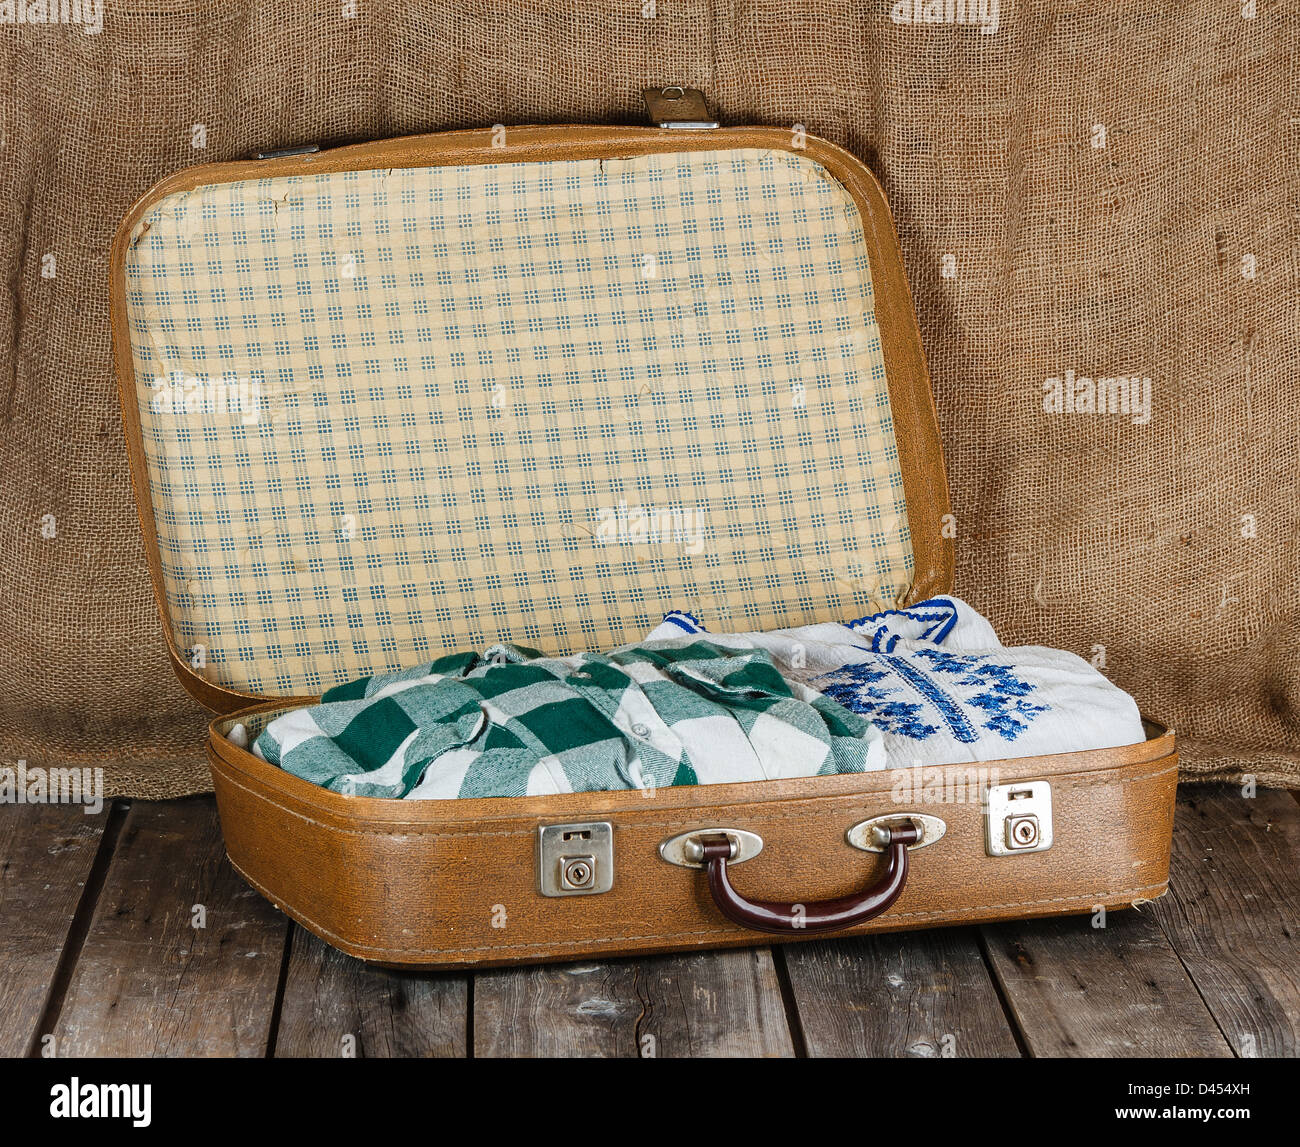 Old shabby suitcase with clothes - Stock Image